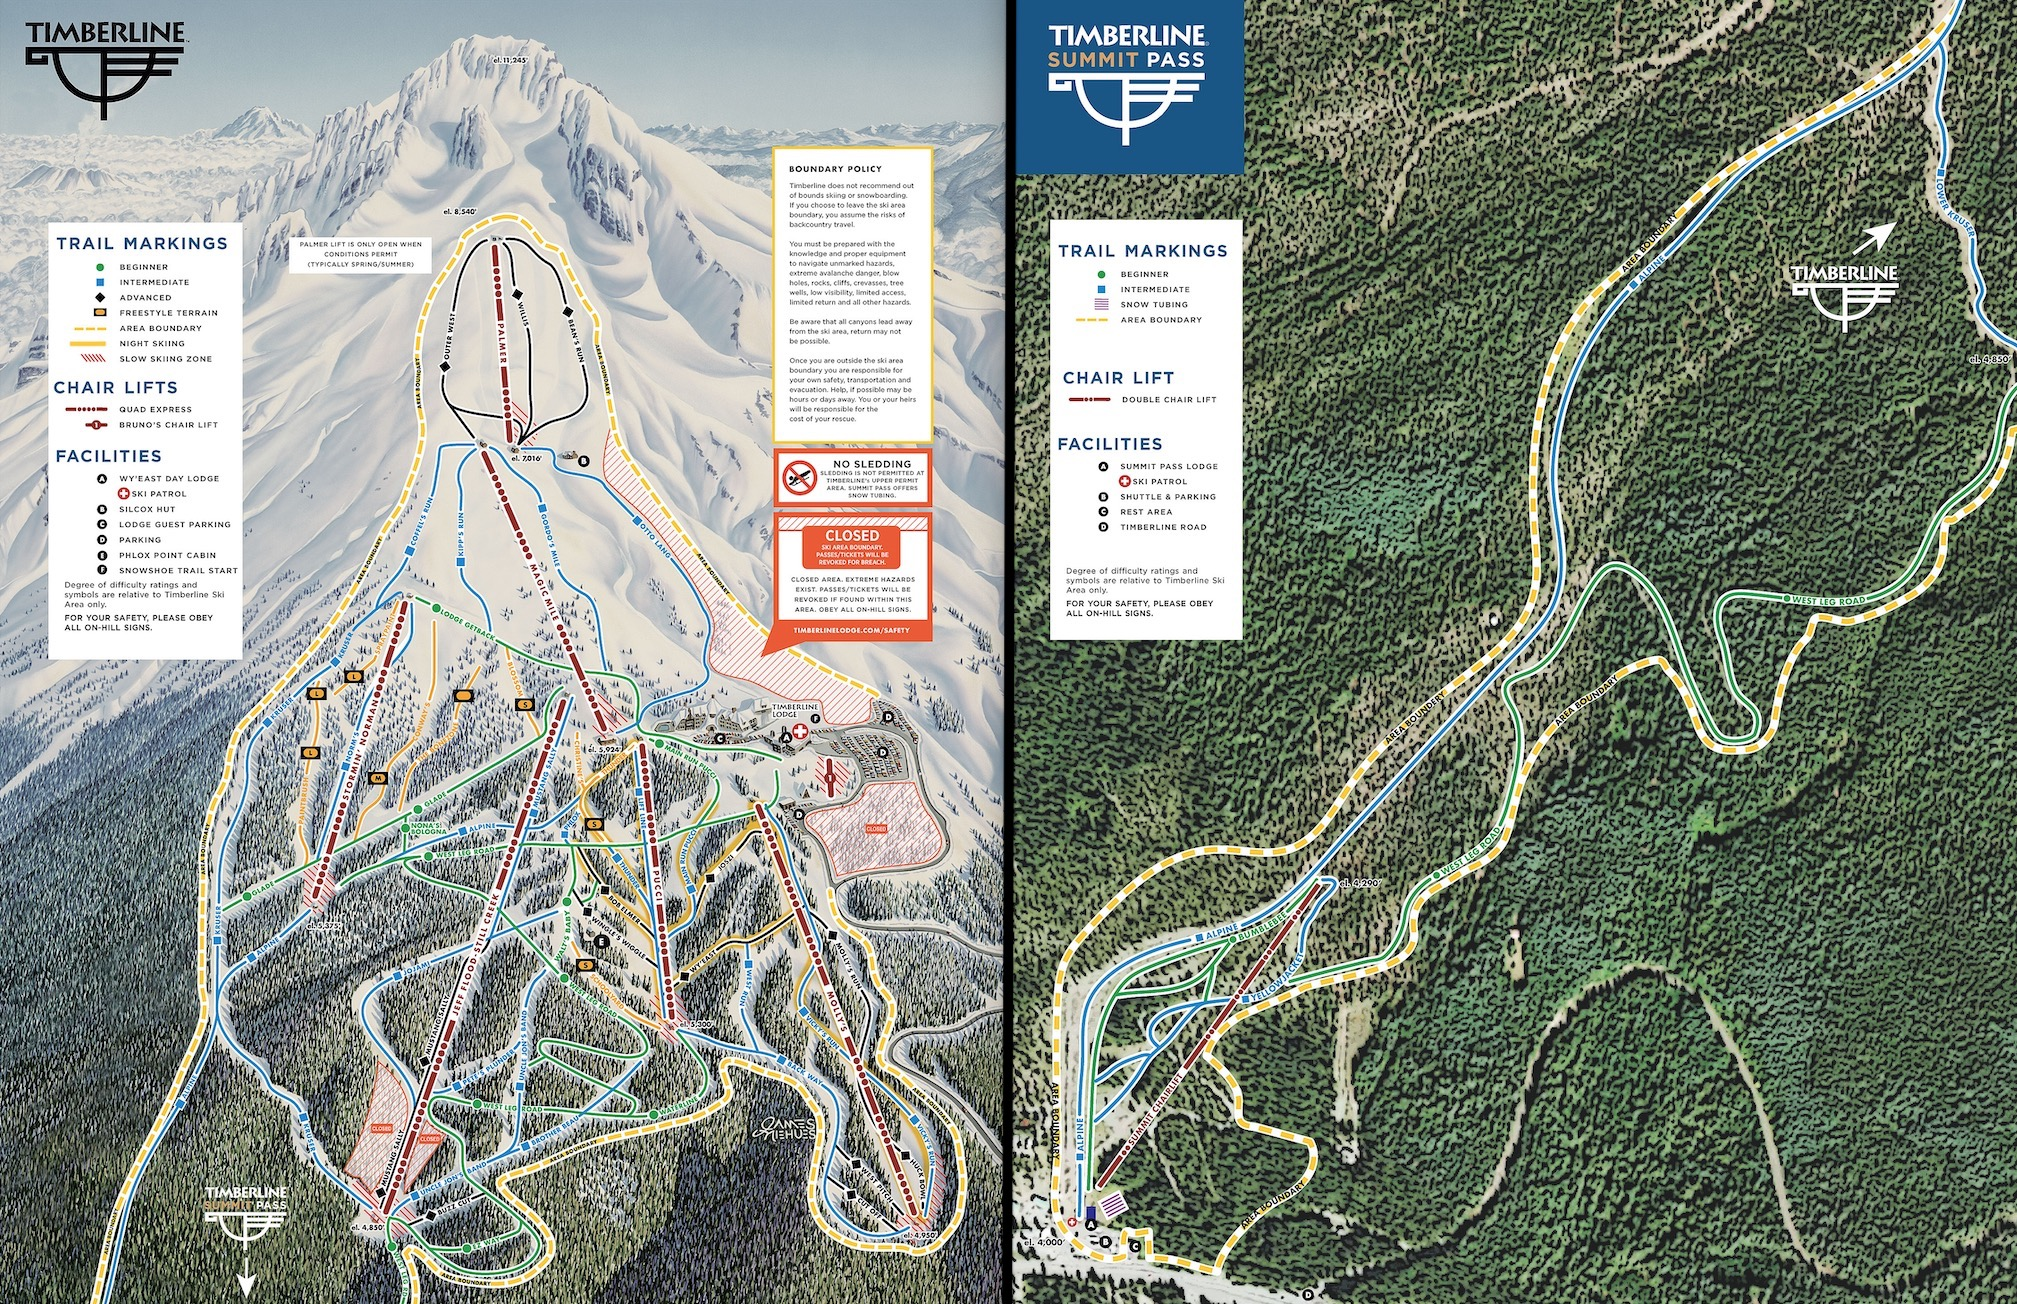 Summit Ski Area Officially Merges into Timberline Lodge = The Largest Vertical Ski Area in America